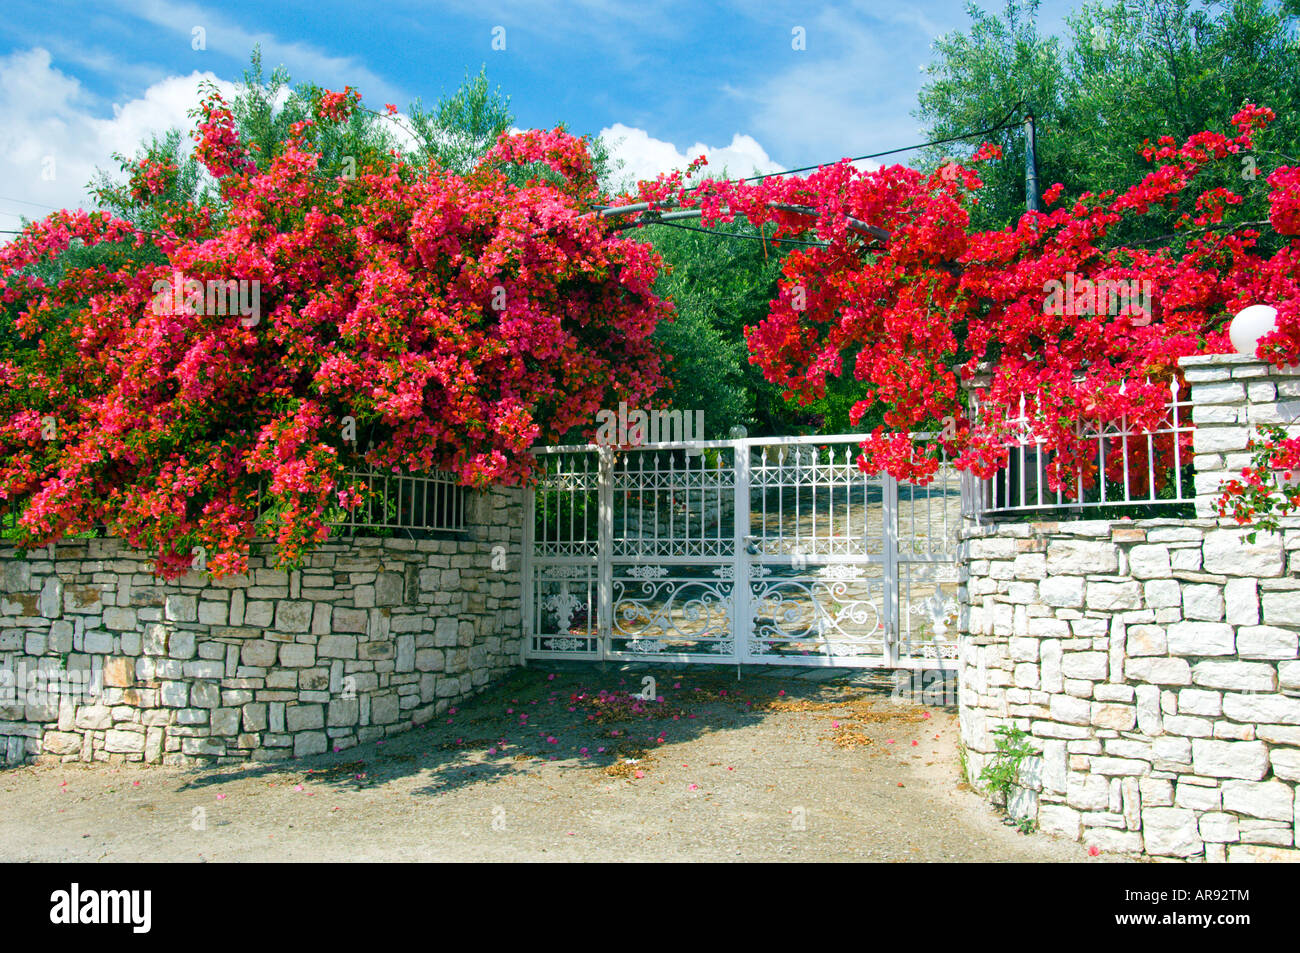 An entrance gate to an estate with bougainvillea flowers in Messinia Peloponesse Greece - Stock Image